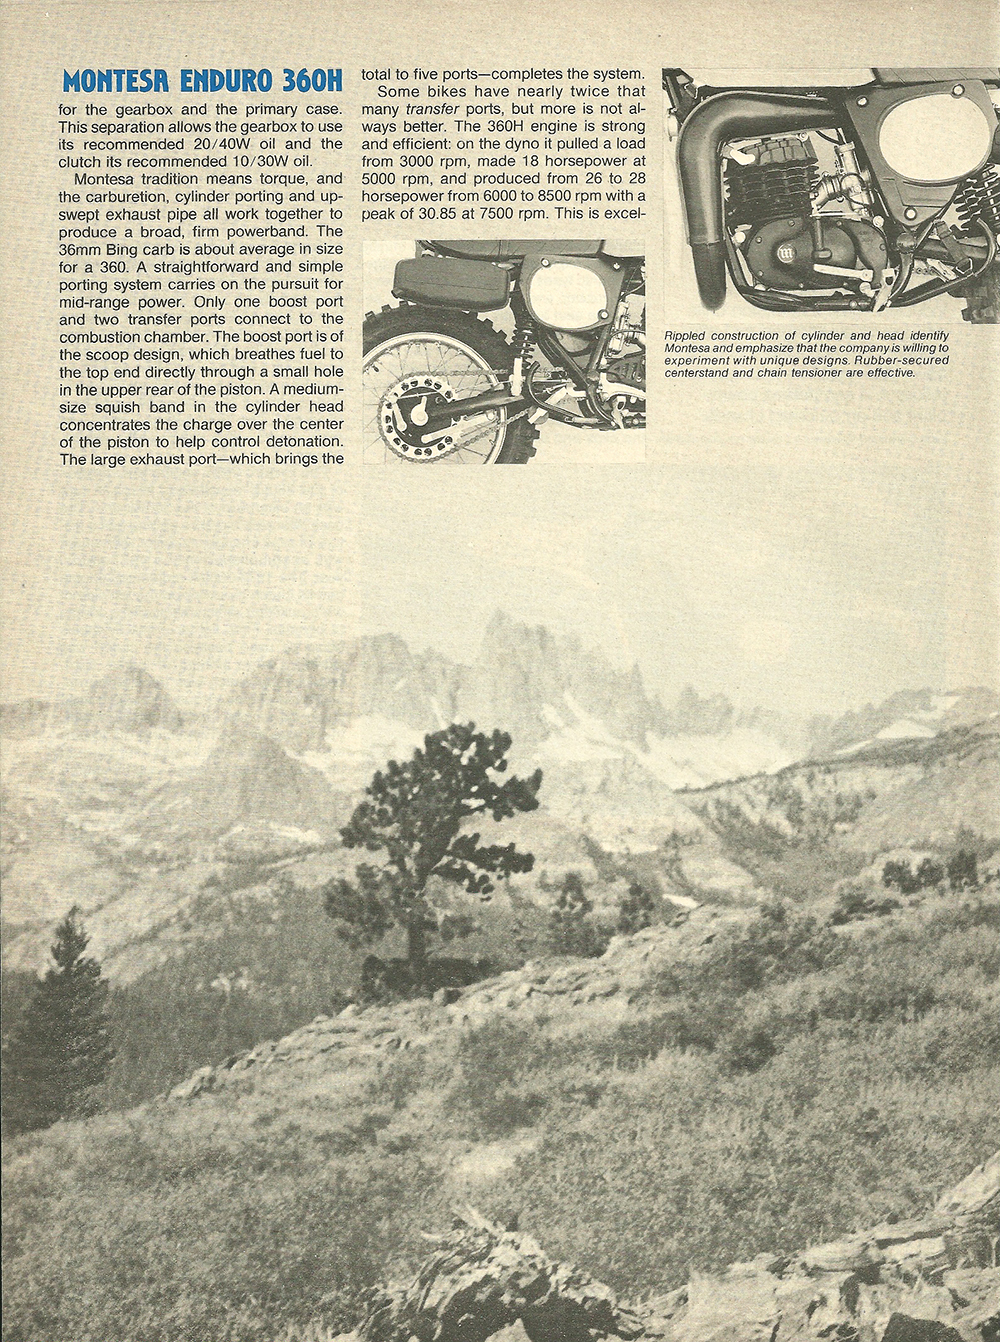 1978 Montesa enduro 360H road test 03.jpg